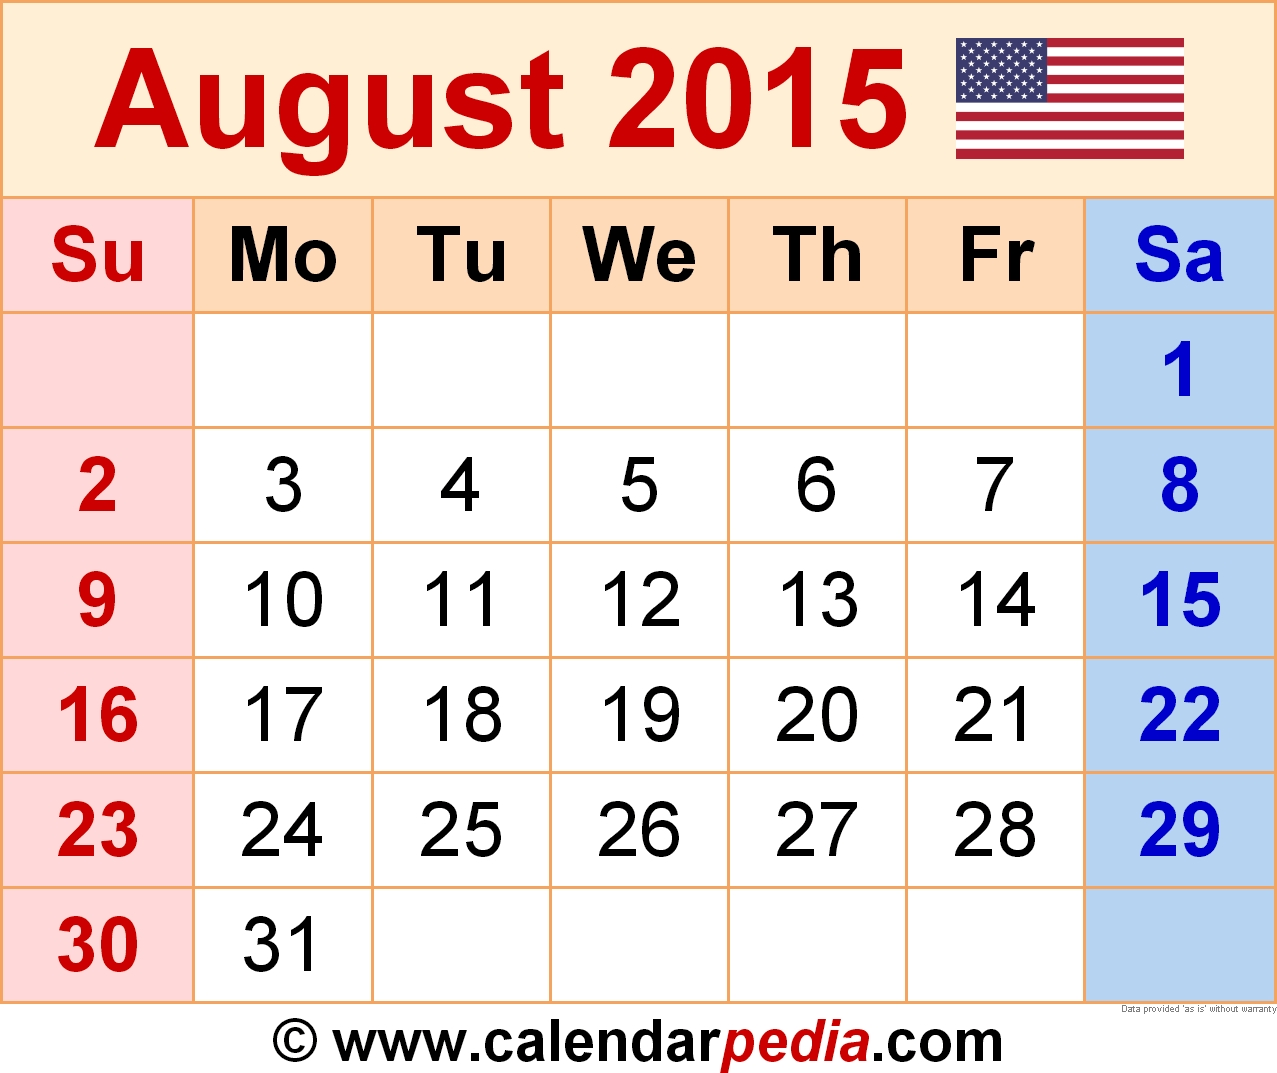 August 2015 Calendars For Word Excel Pdf  Xjb